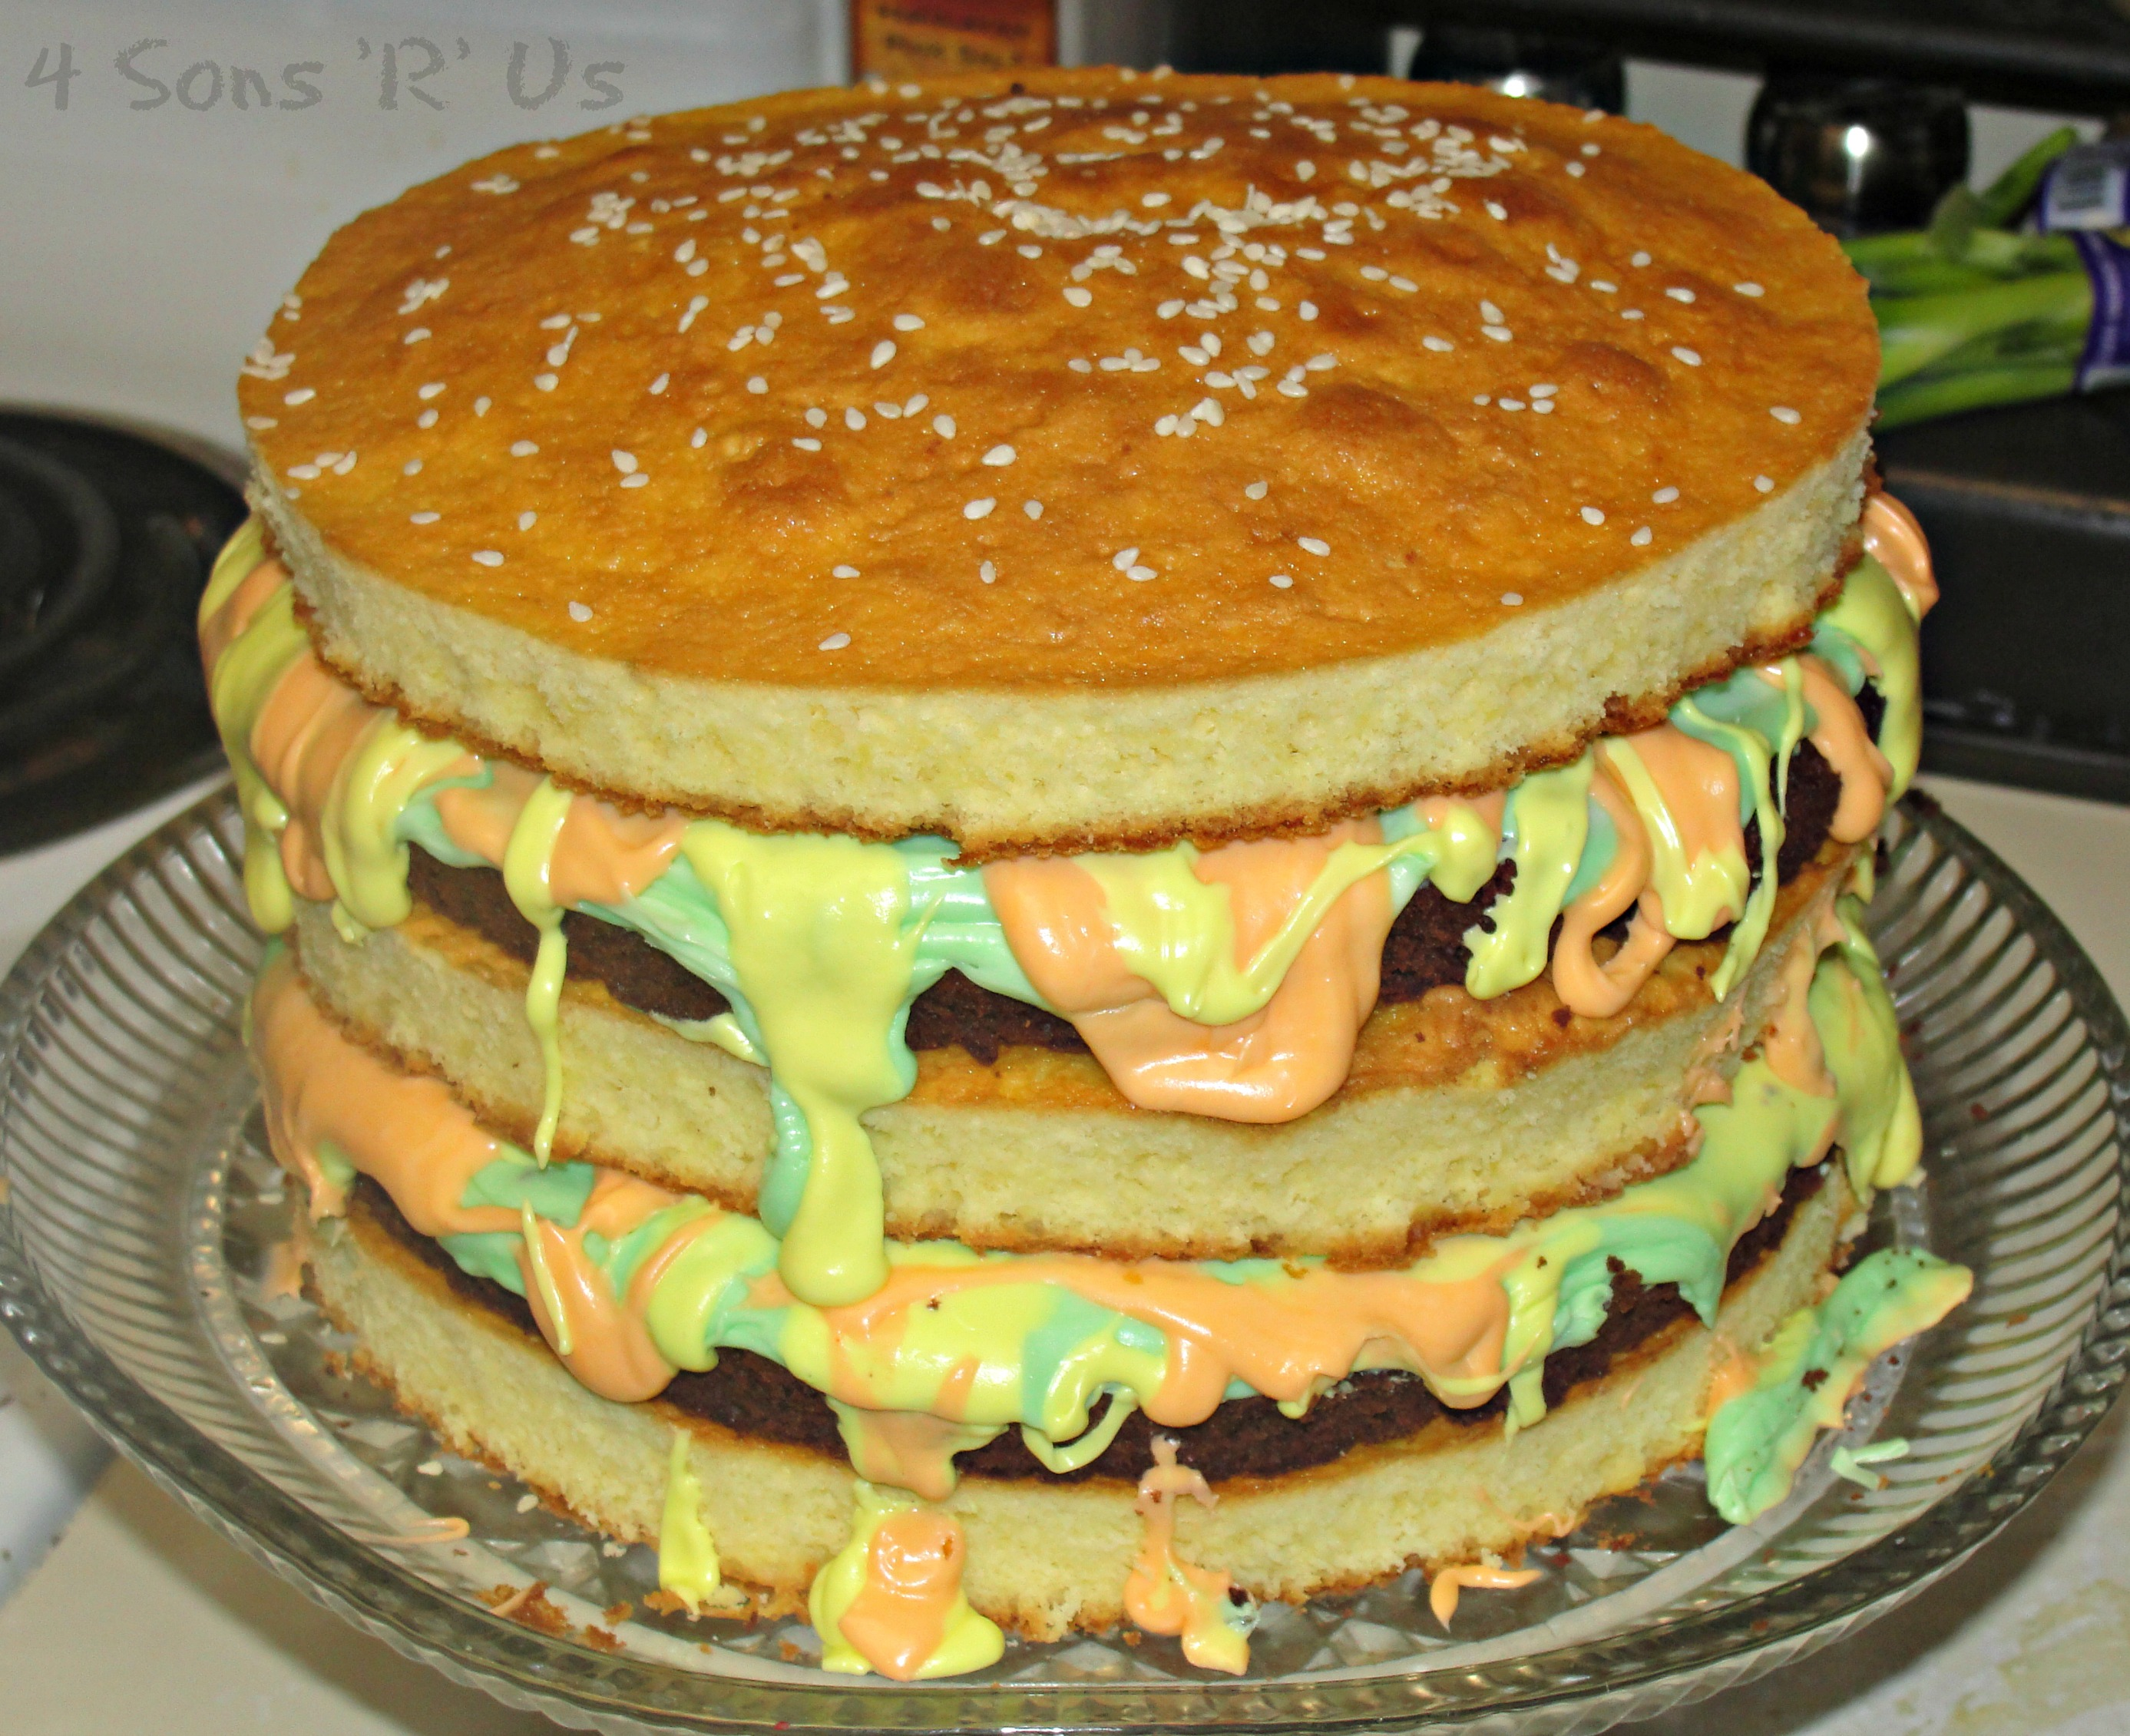 Swell How To Make A Big Mac Burger Birthday Cake 4 Sons R Us Funny Birthday Cards Online Aeocydamsfinfo